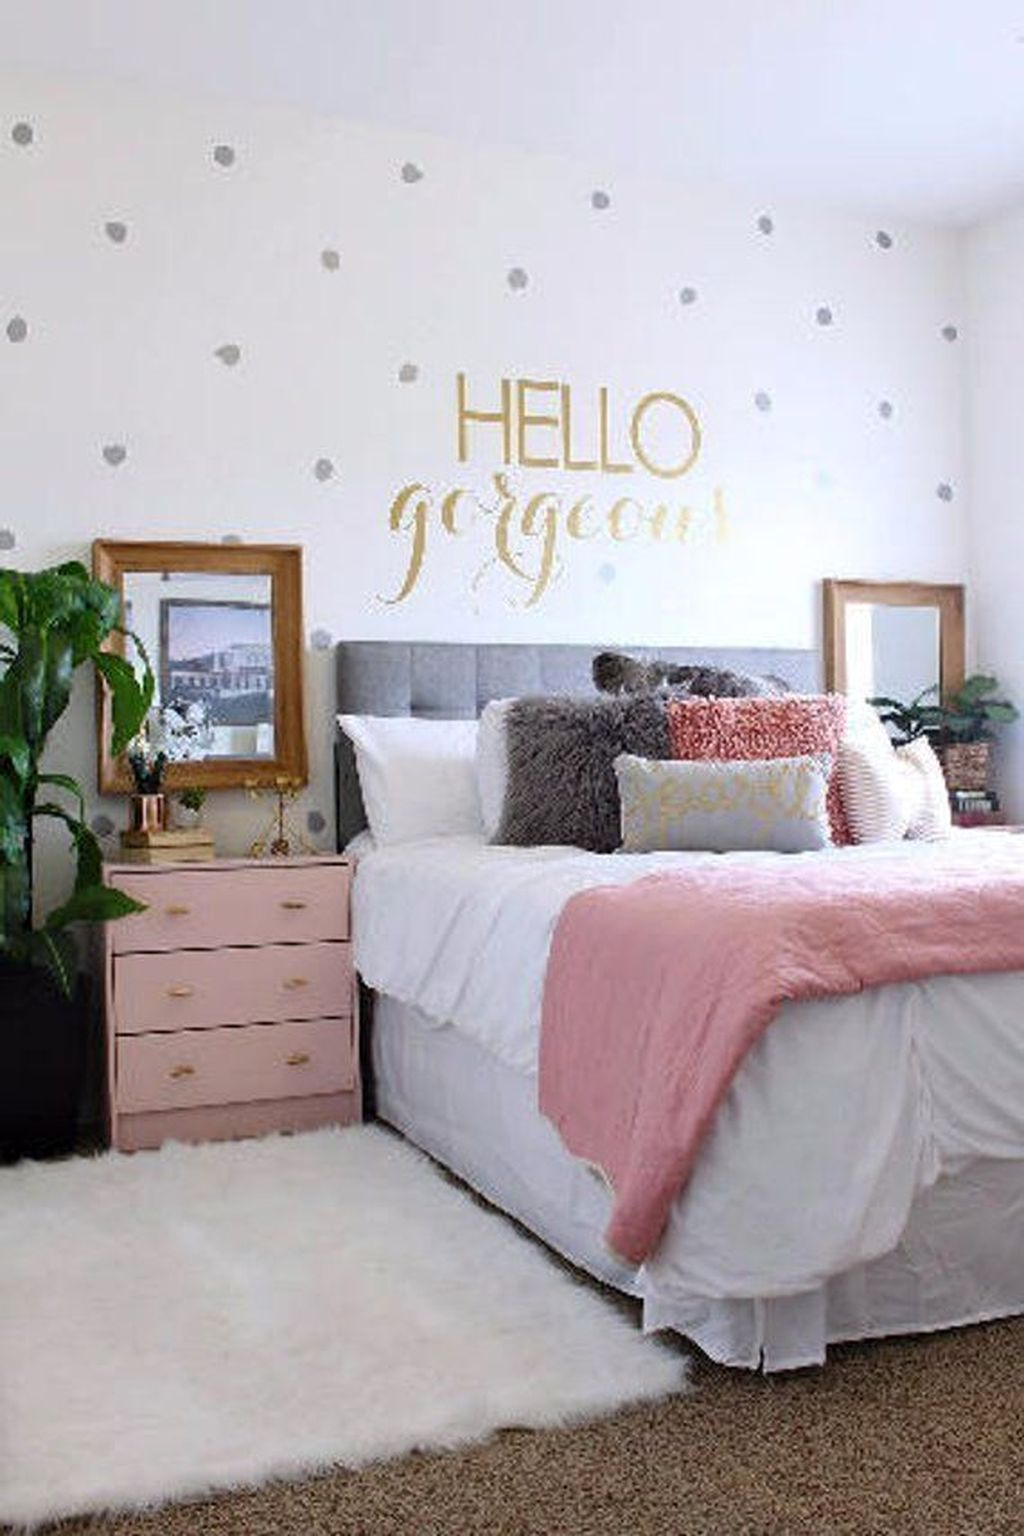 Best Teenager Bedroom Ideas With Awesome Decor 24